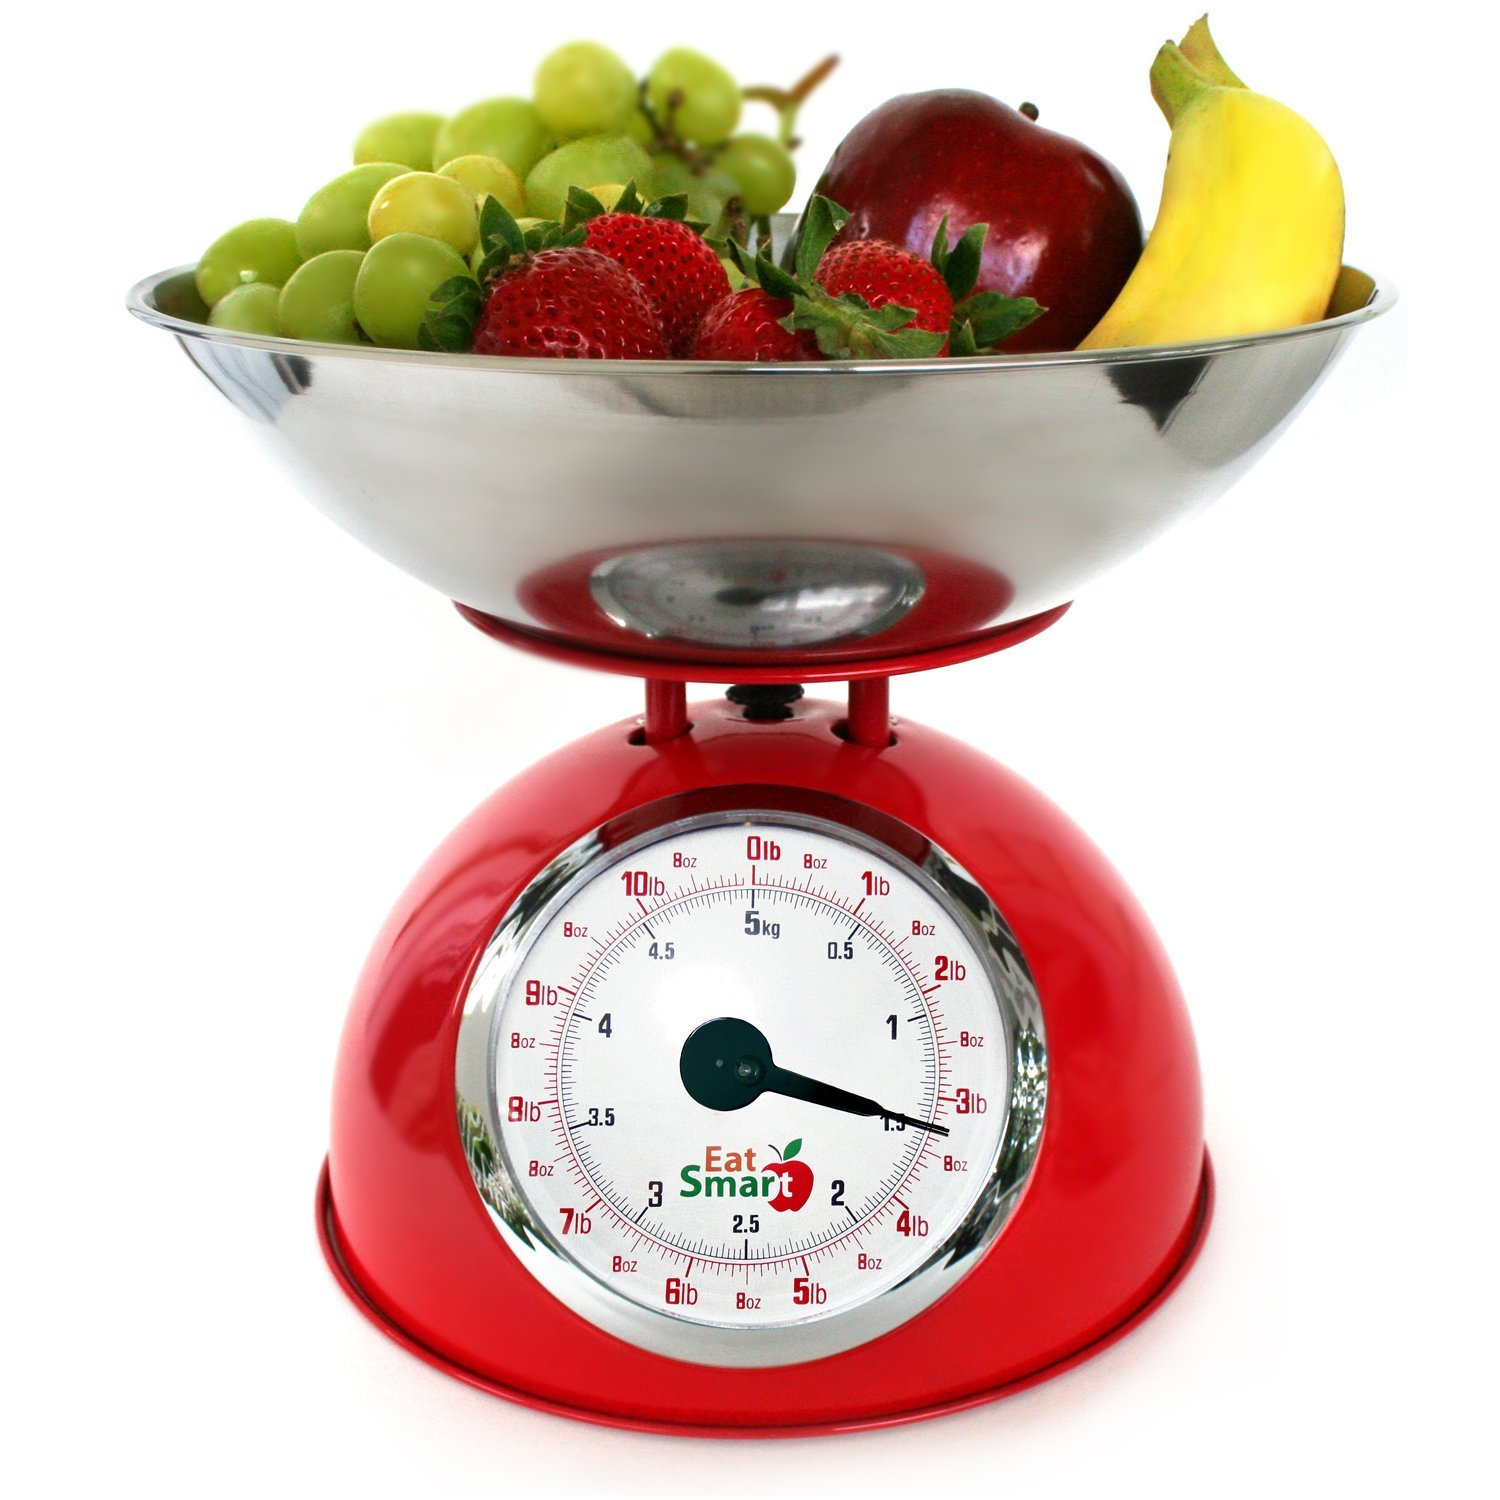 Not Losing Weight Try Measuring Your Food